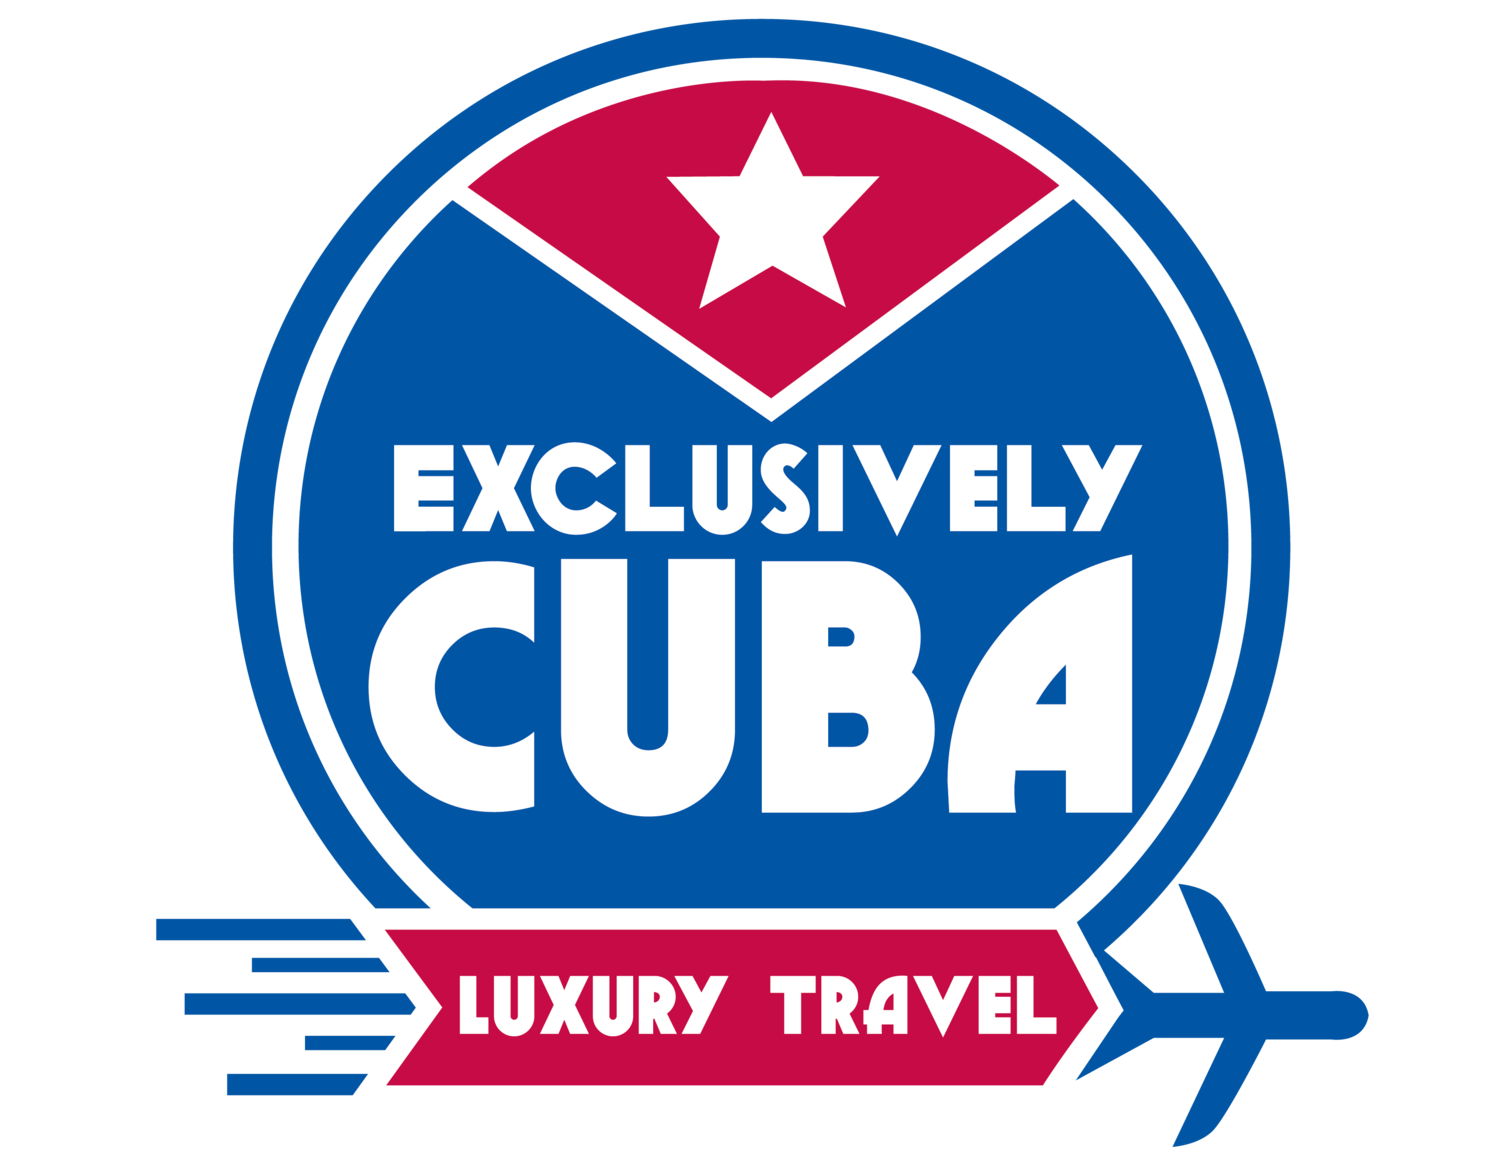 Exclusively Cuba